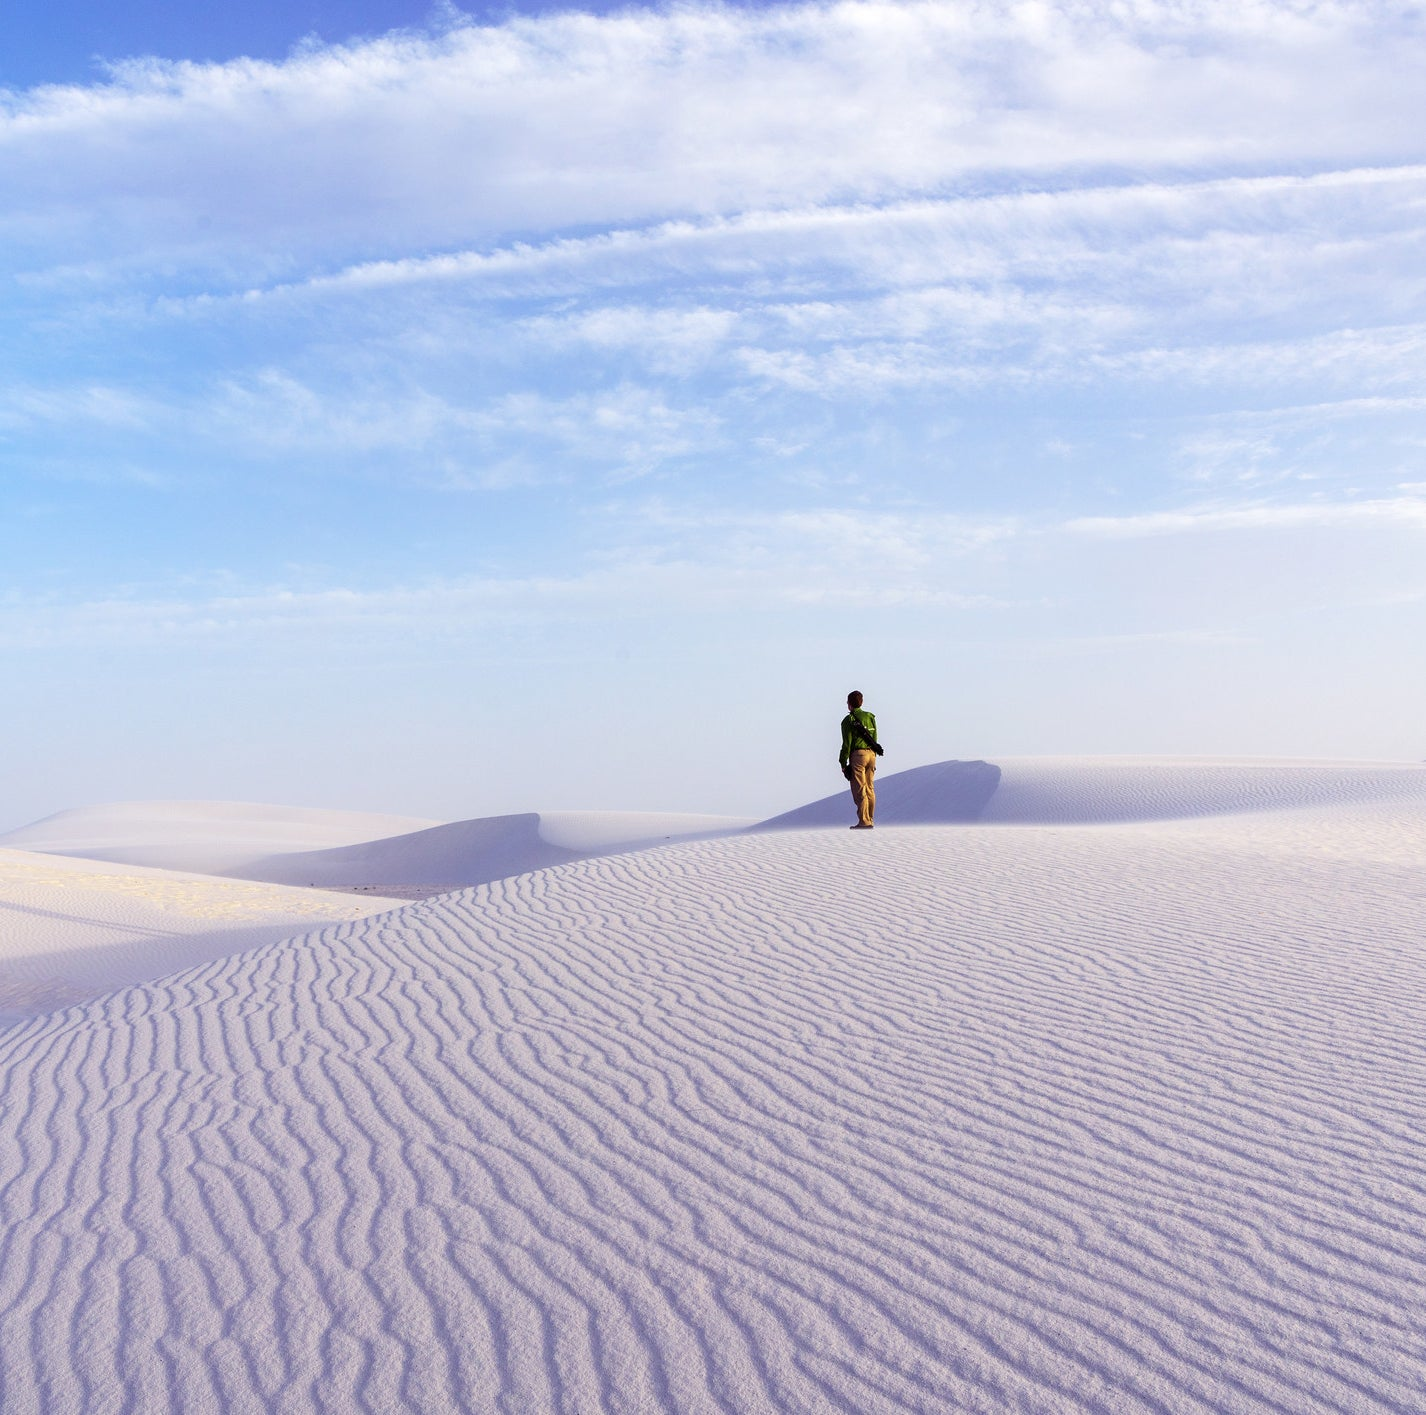 Person stands on perfectly white sand dunes